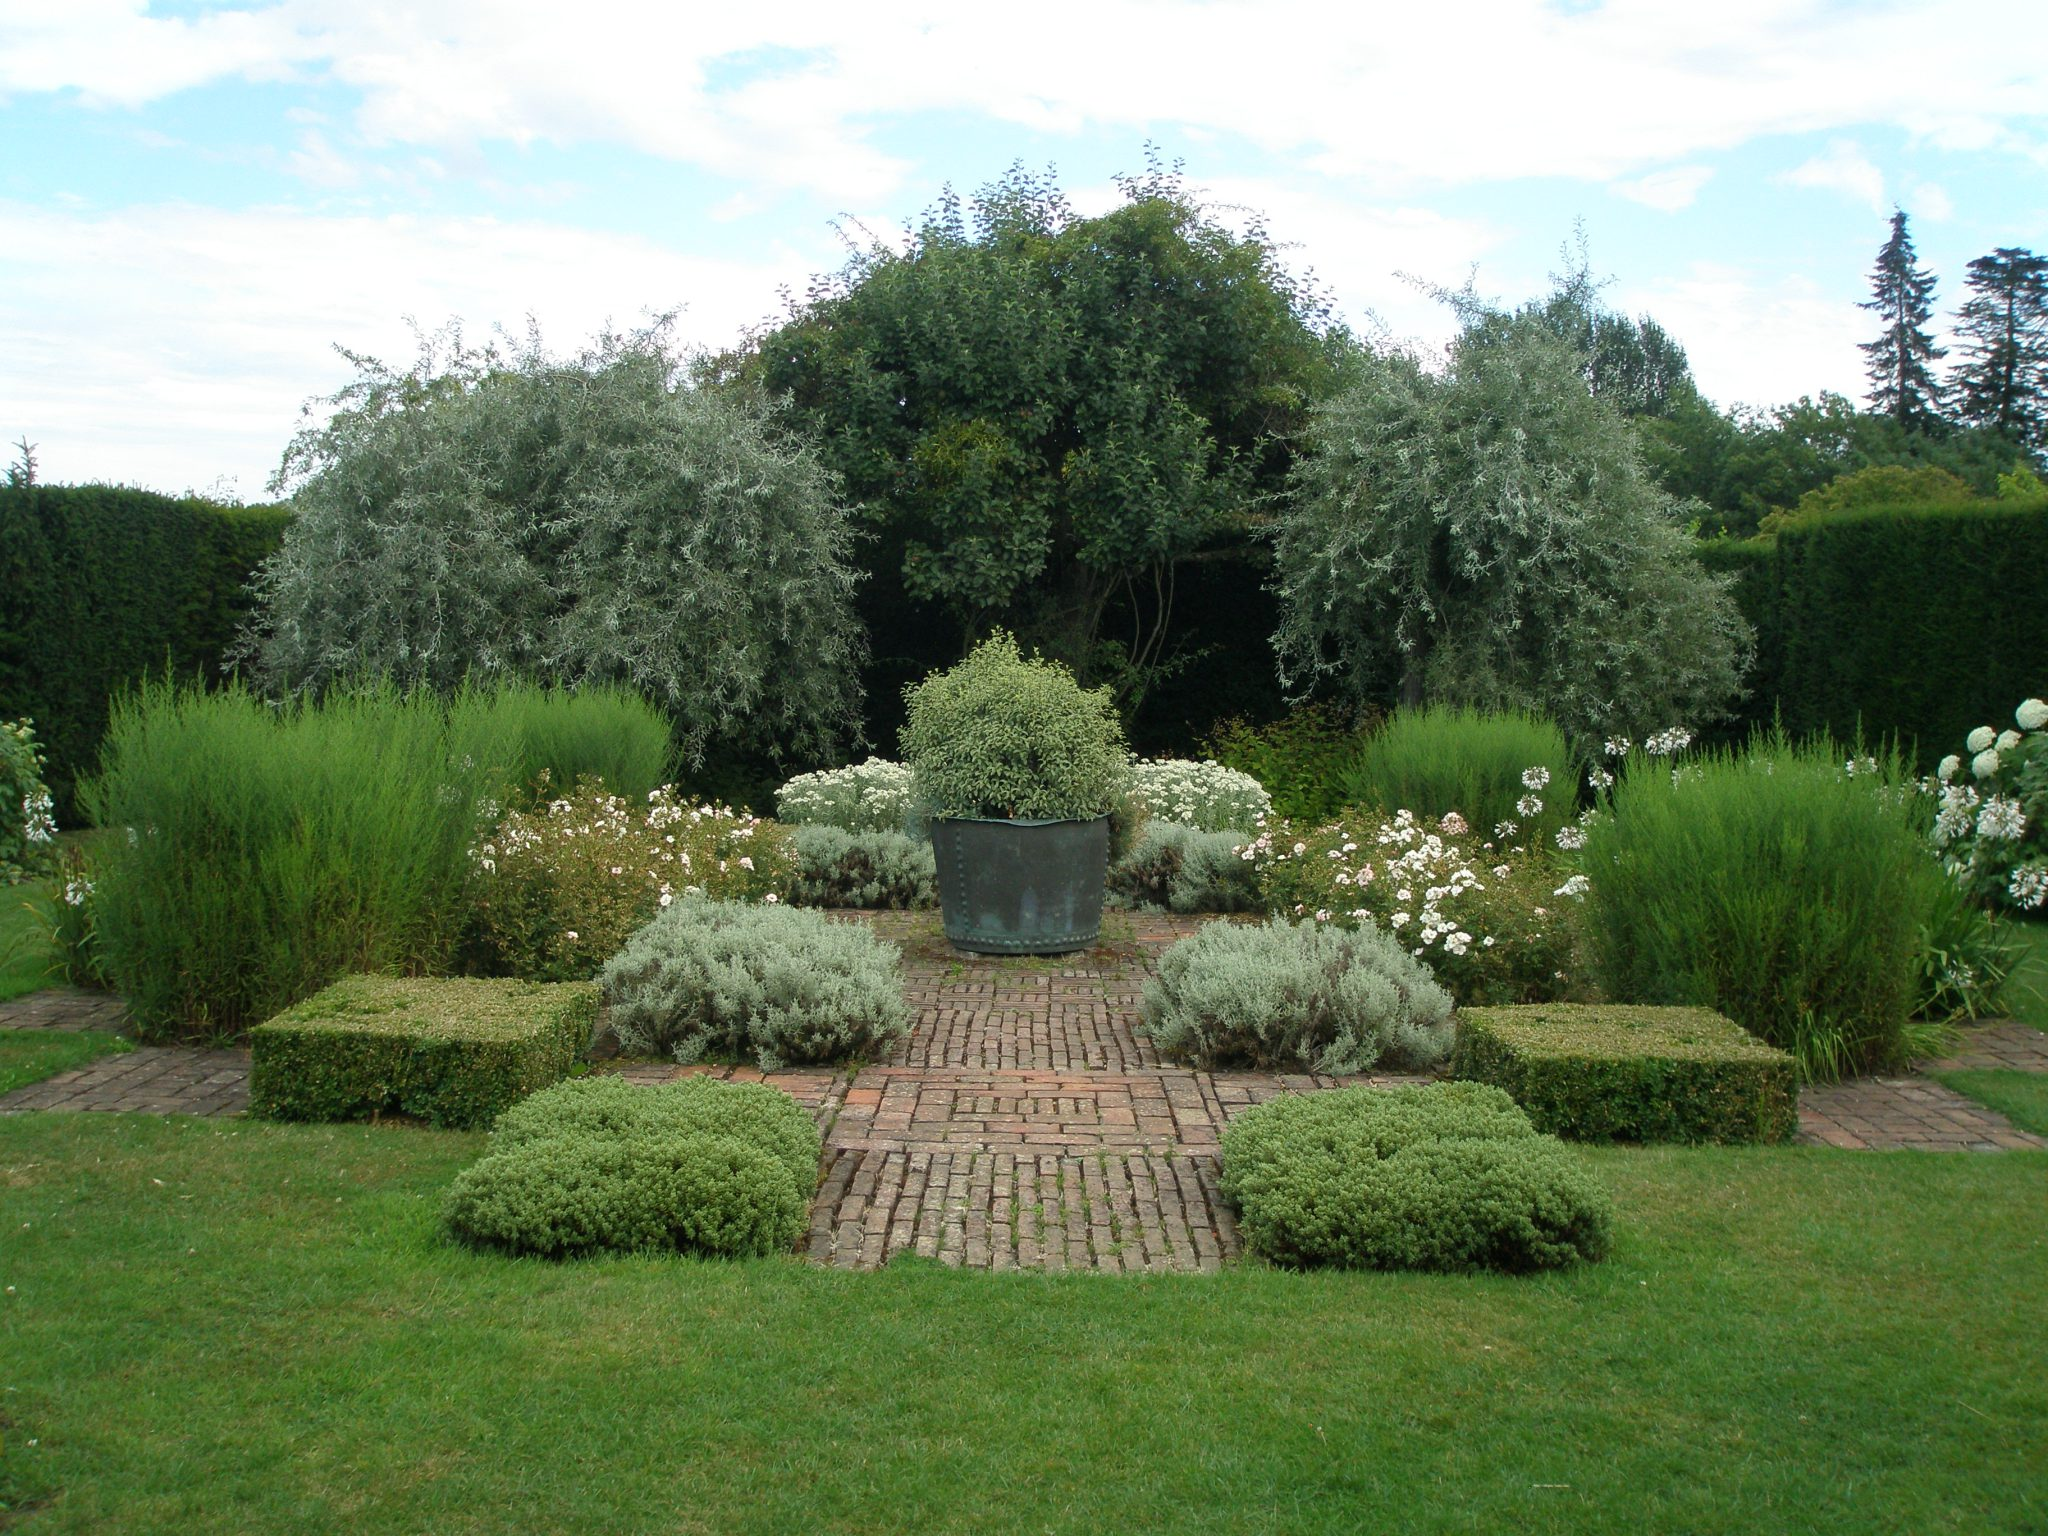 The Grey & White Garden is adjacent to Diana's Bath. This area was designed by John Codrington in the 1970s, with a mix of white, grey and silver plants, all of which were chosen for their drought-resistant qualities.